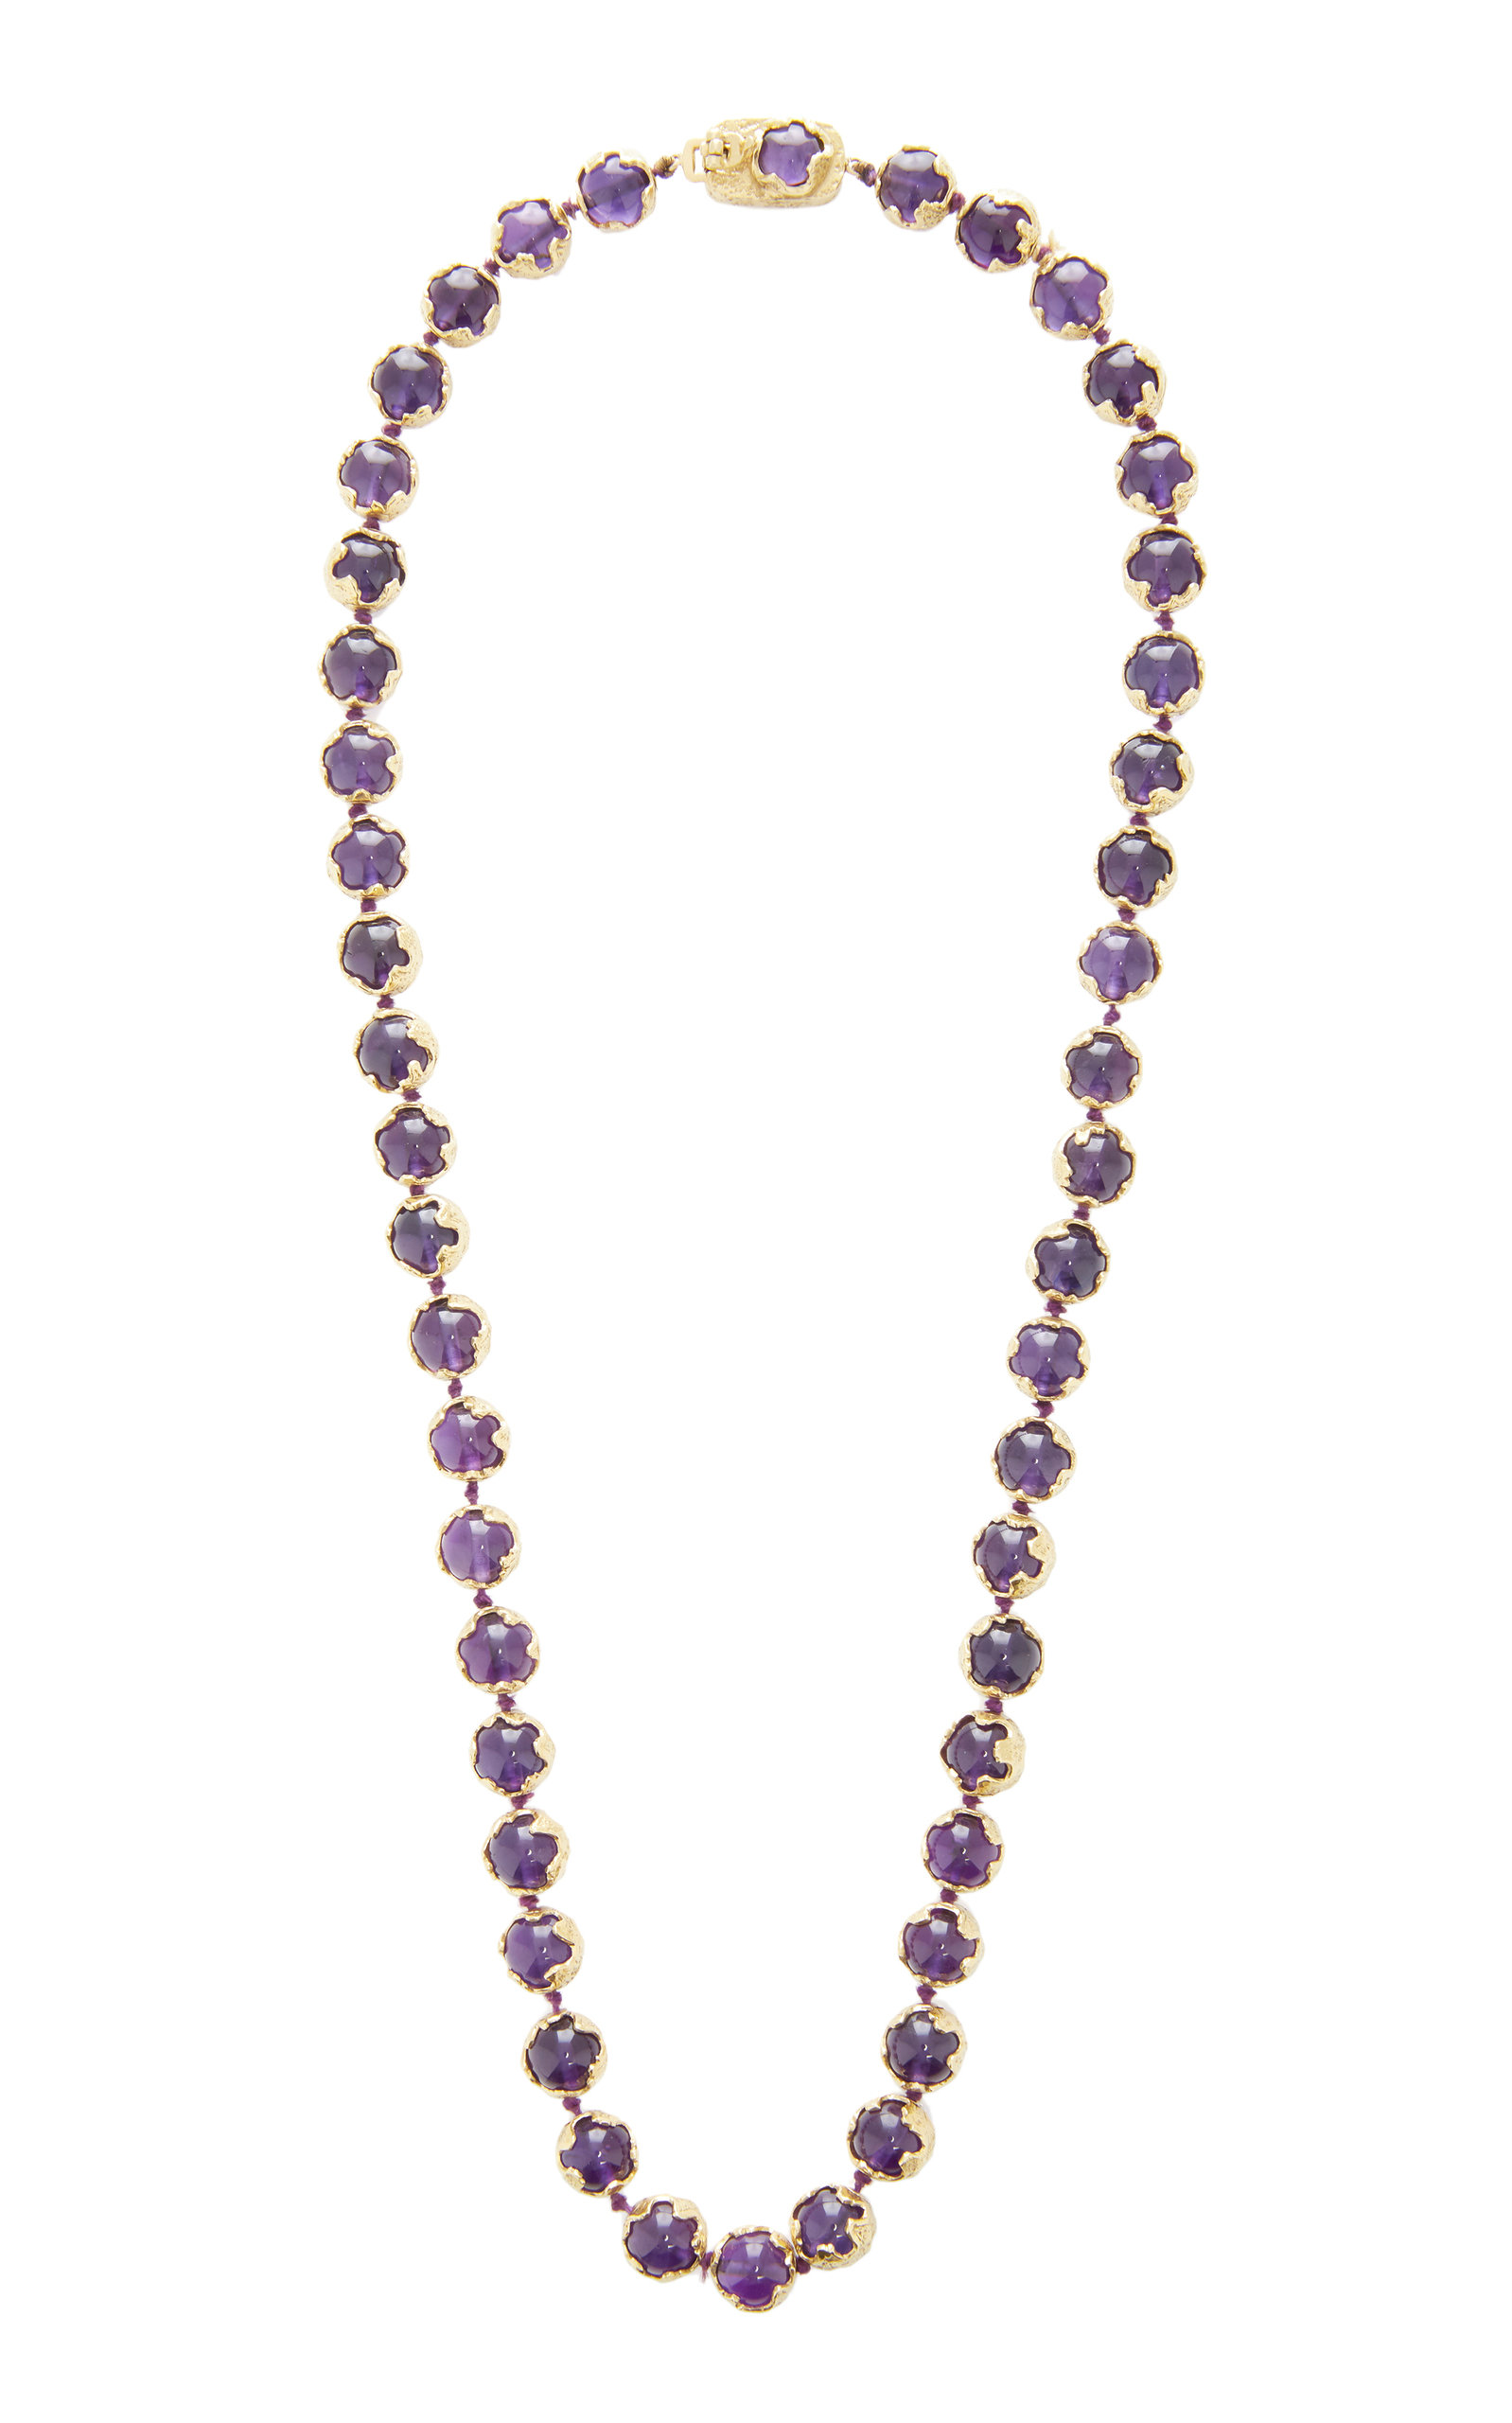 MAHNAZ COLLECTION LIMITED EDITION 18K GOLD AND AAMETHYST BEAD NECKLACE BY CHARLES DE TEMPLE 1982